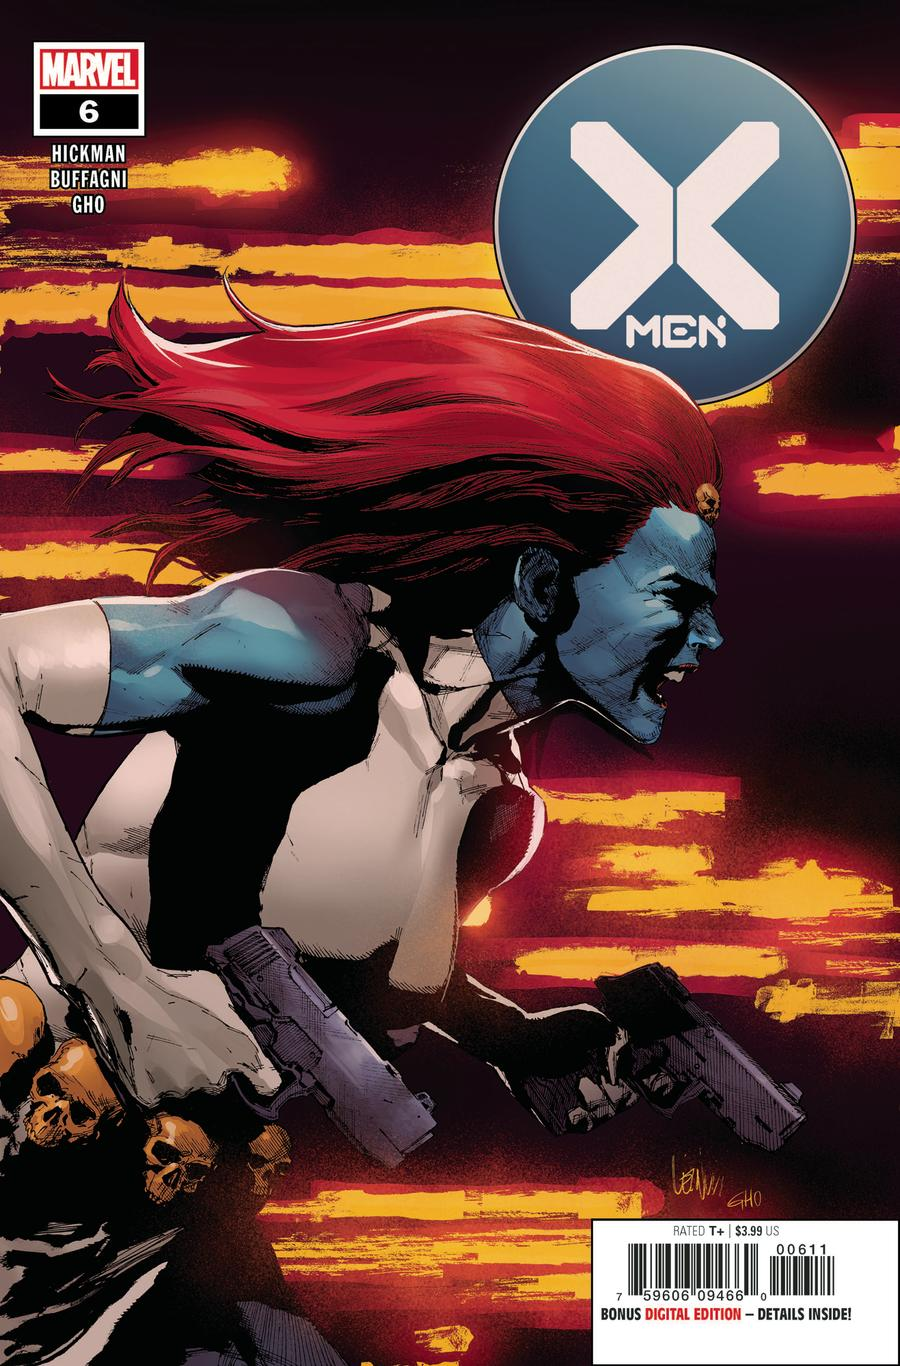 X-Men Vol 5 #6 Cover A Regular Leinil Francis Yu Cover (Dawn Of X Tie-In)